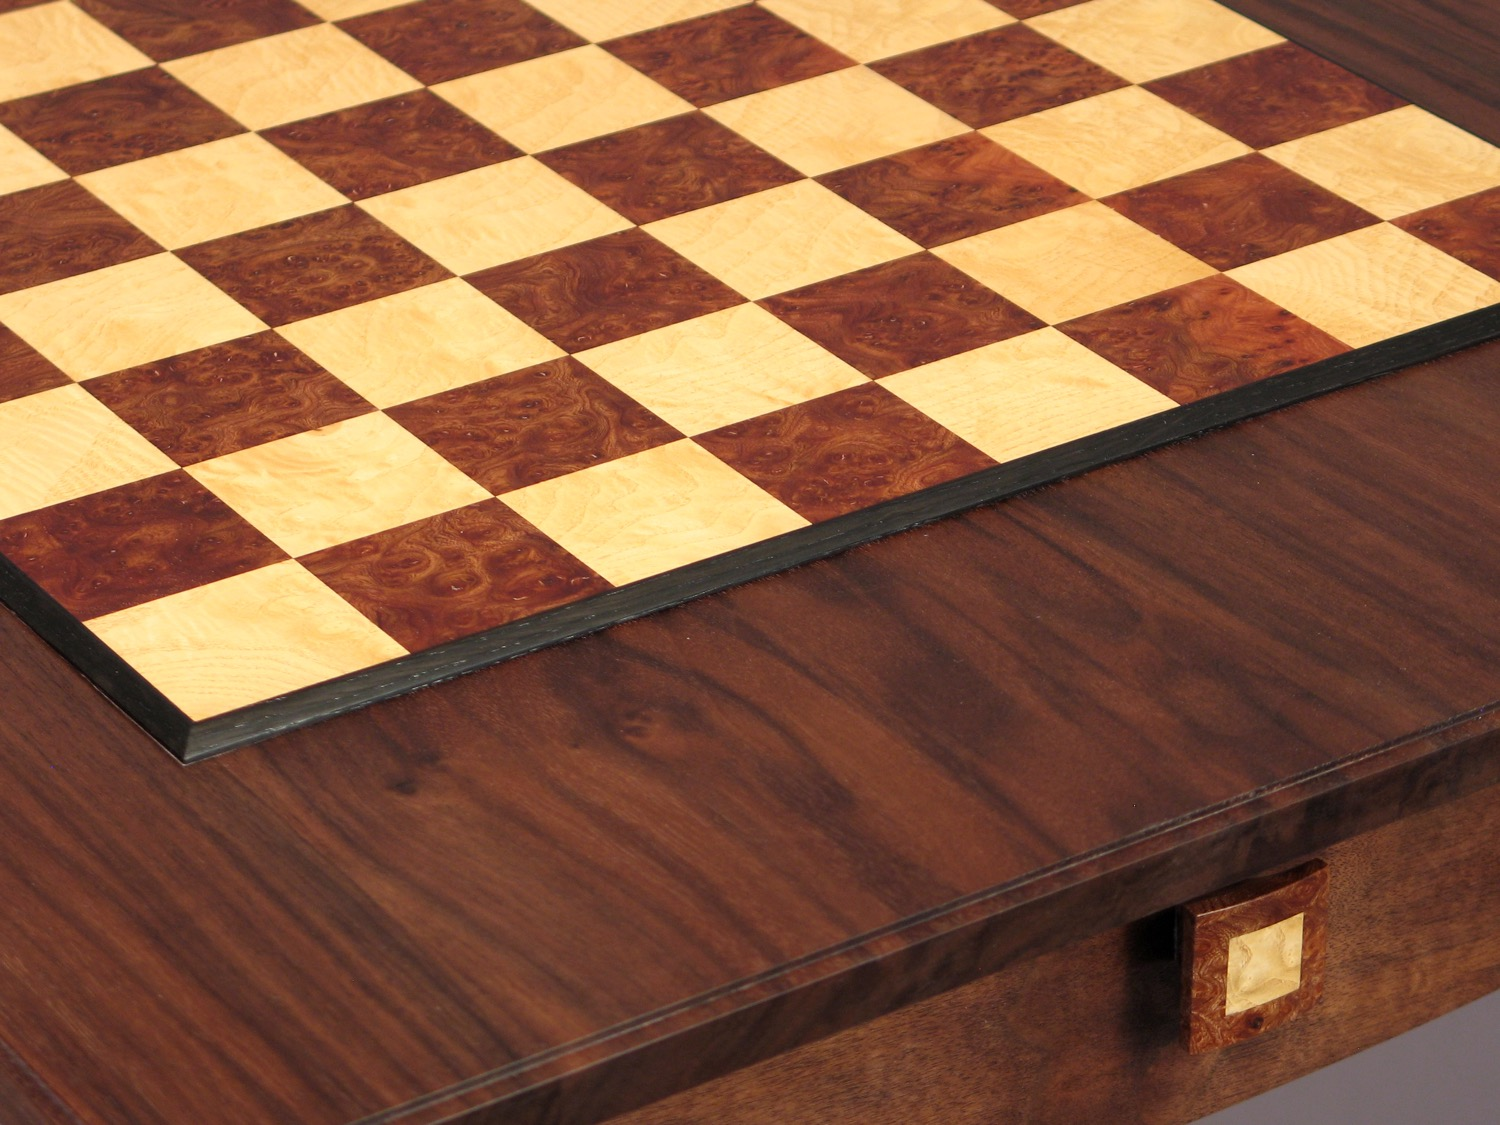 Gold chess table detail -walnut, ash, elm burl, bog oak